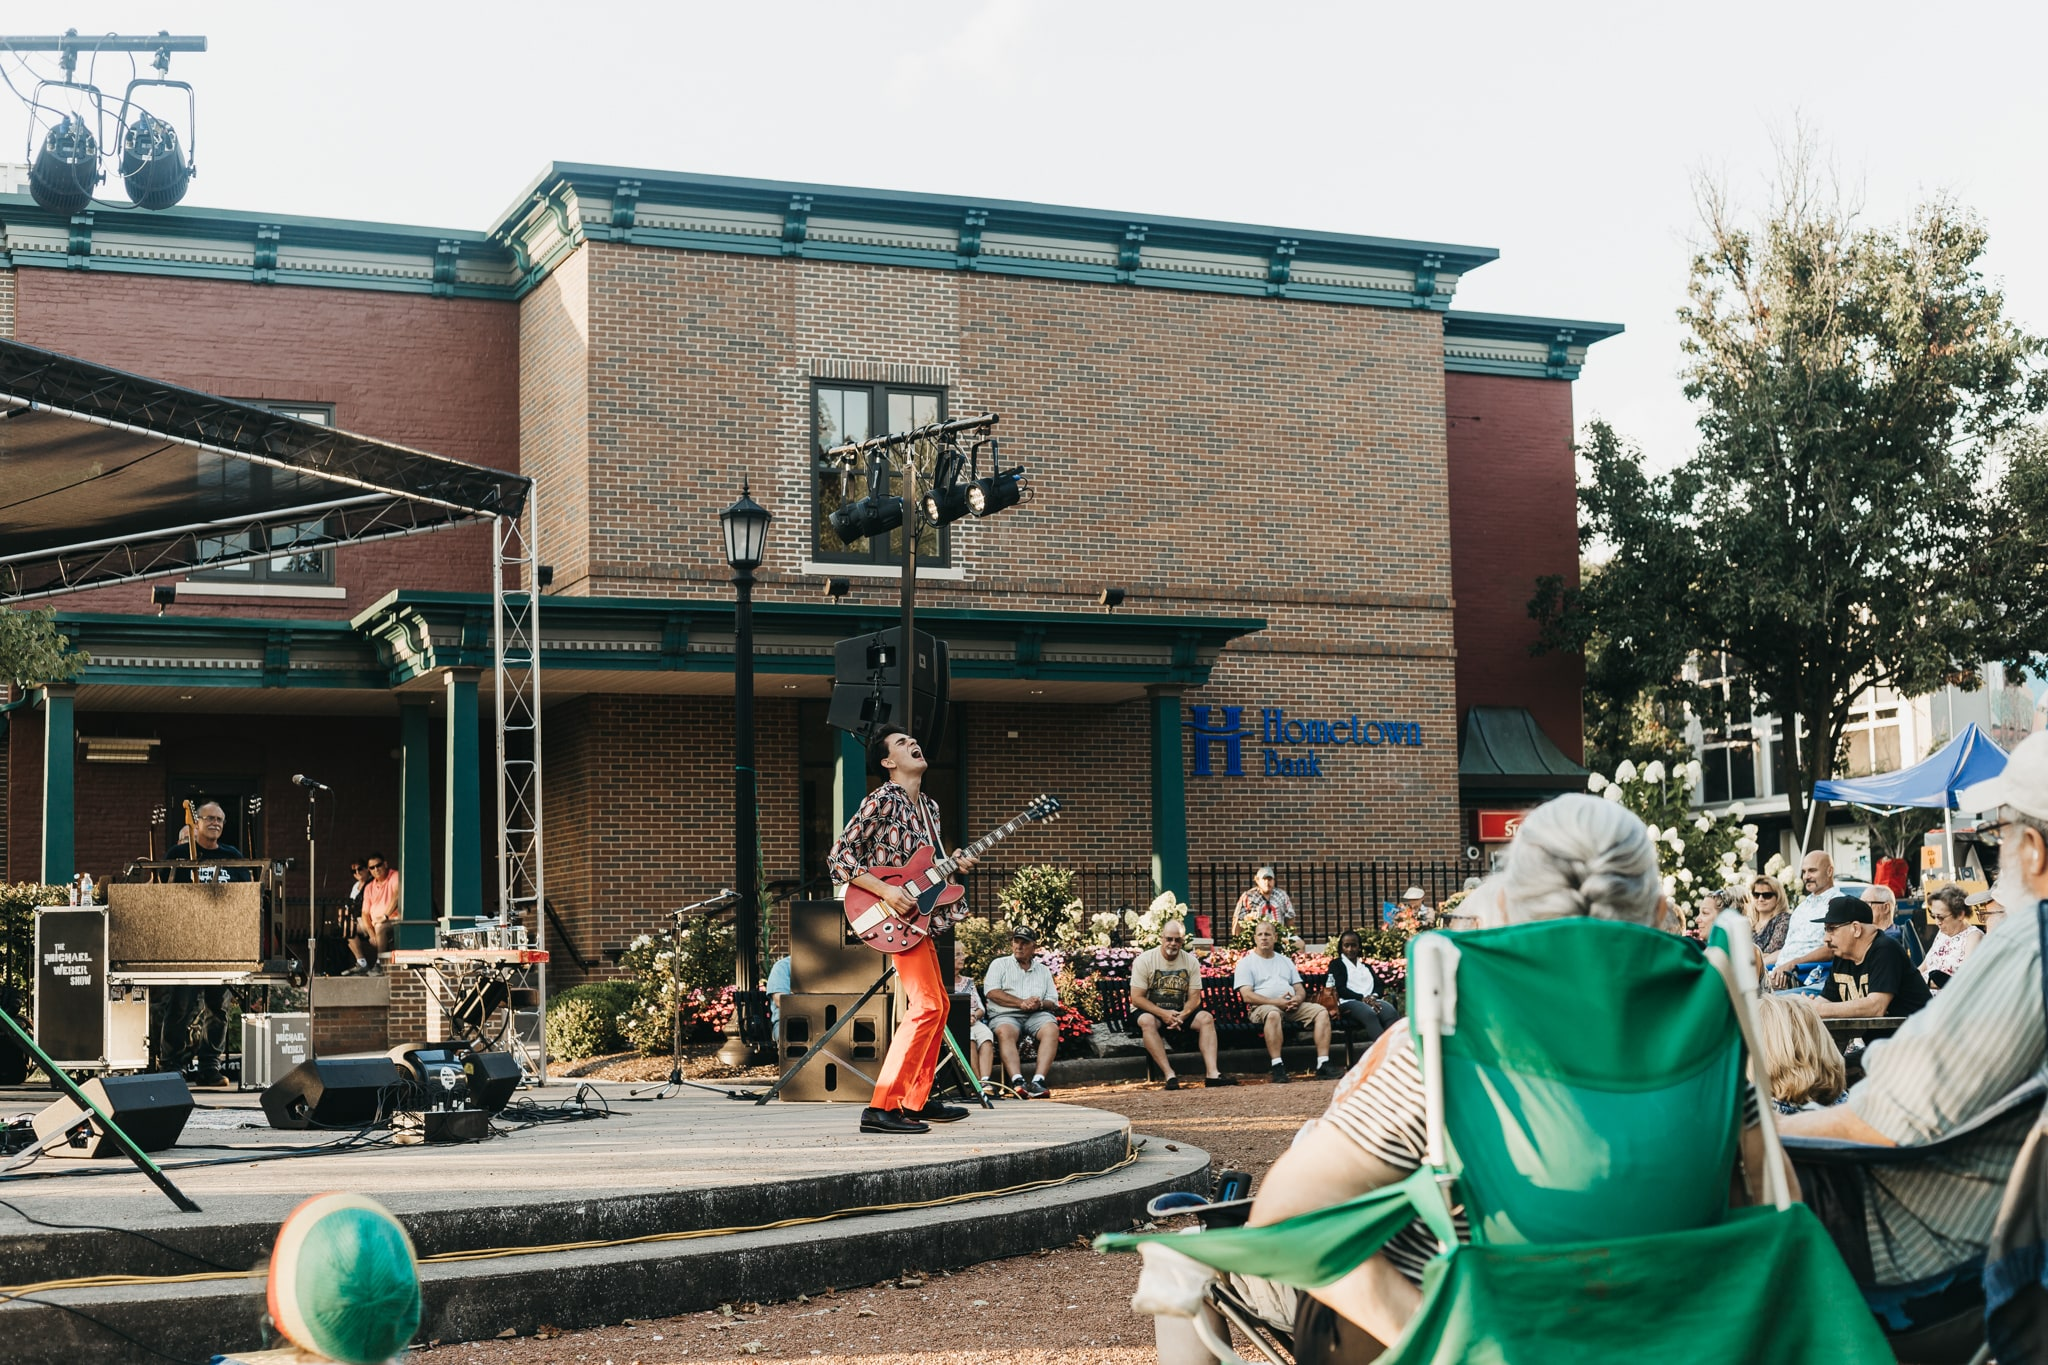 guitarist playing in front of crowd of people at hometown bank concert